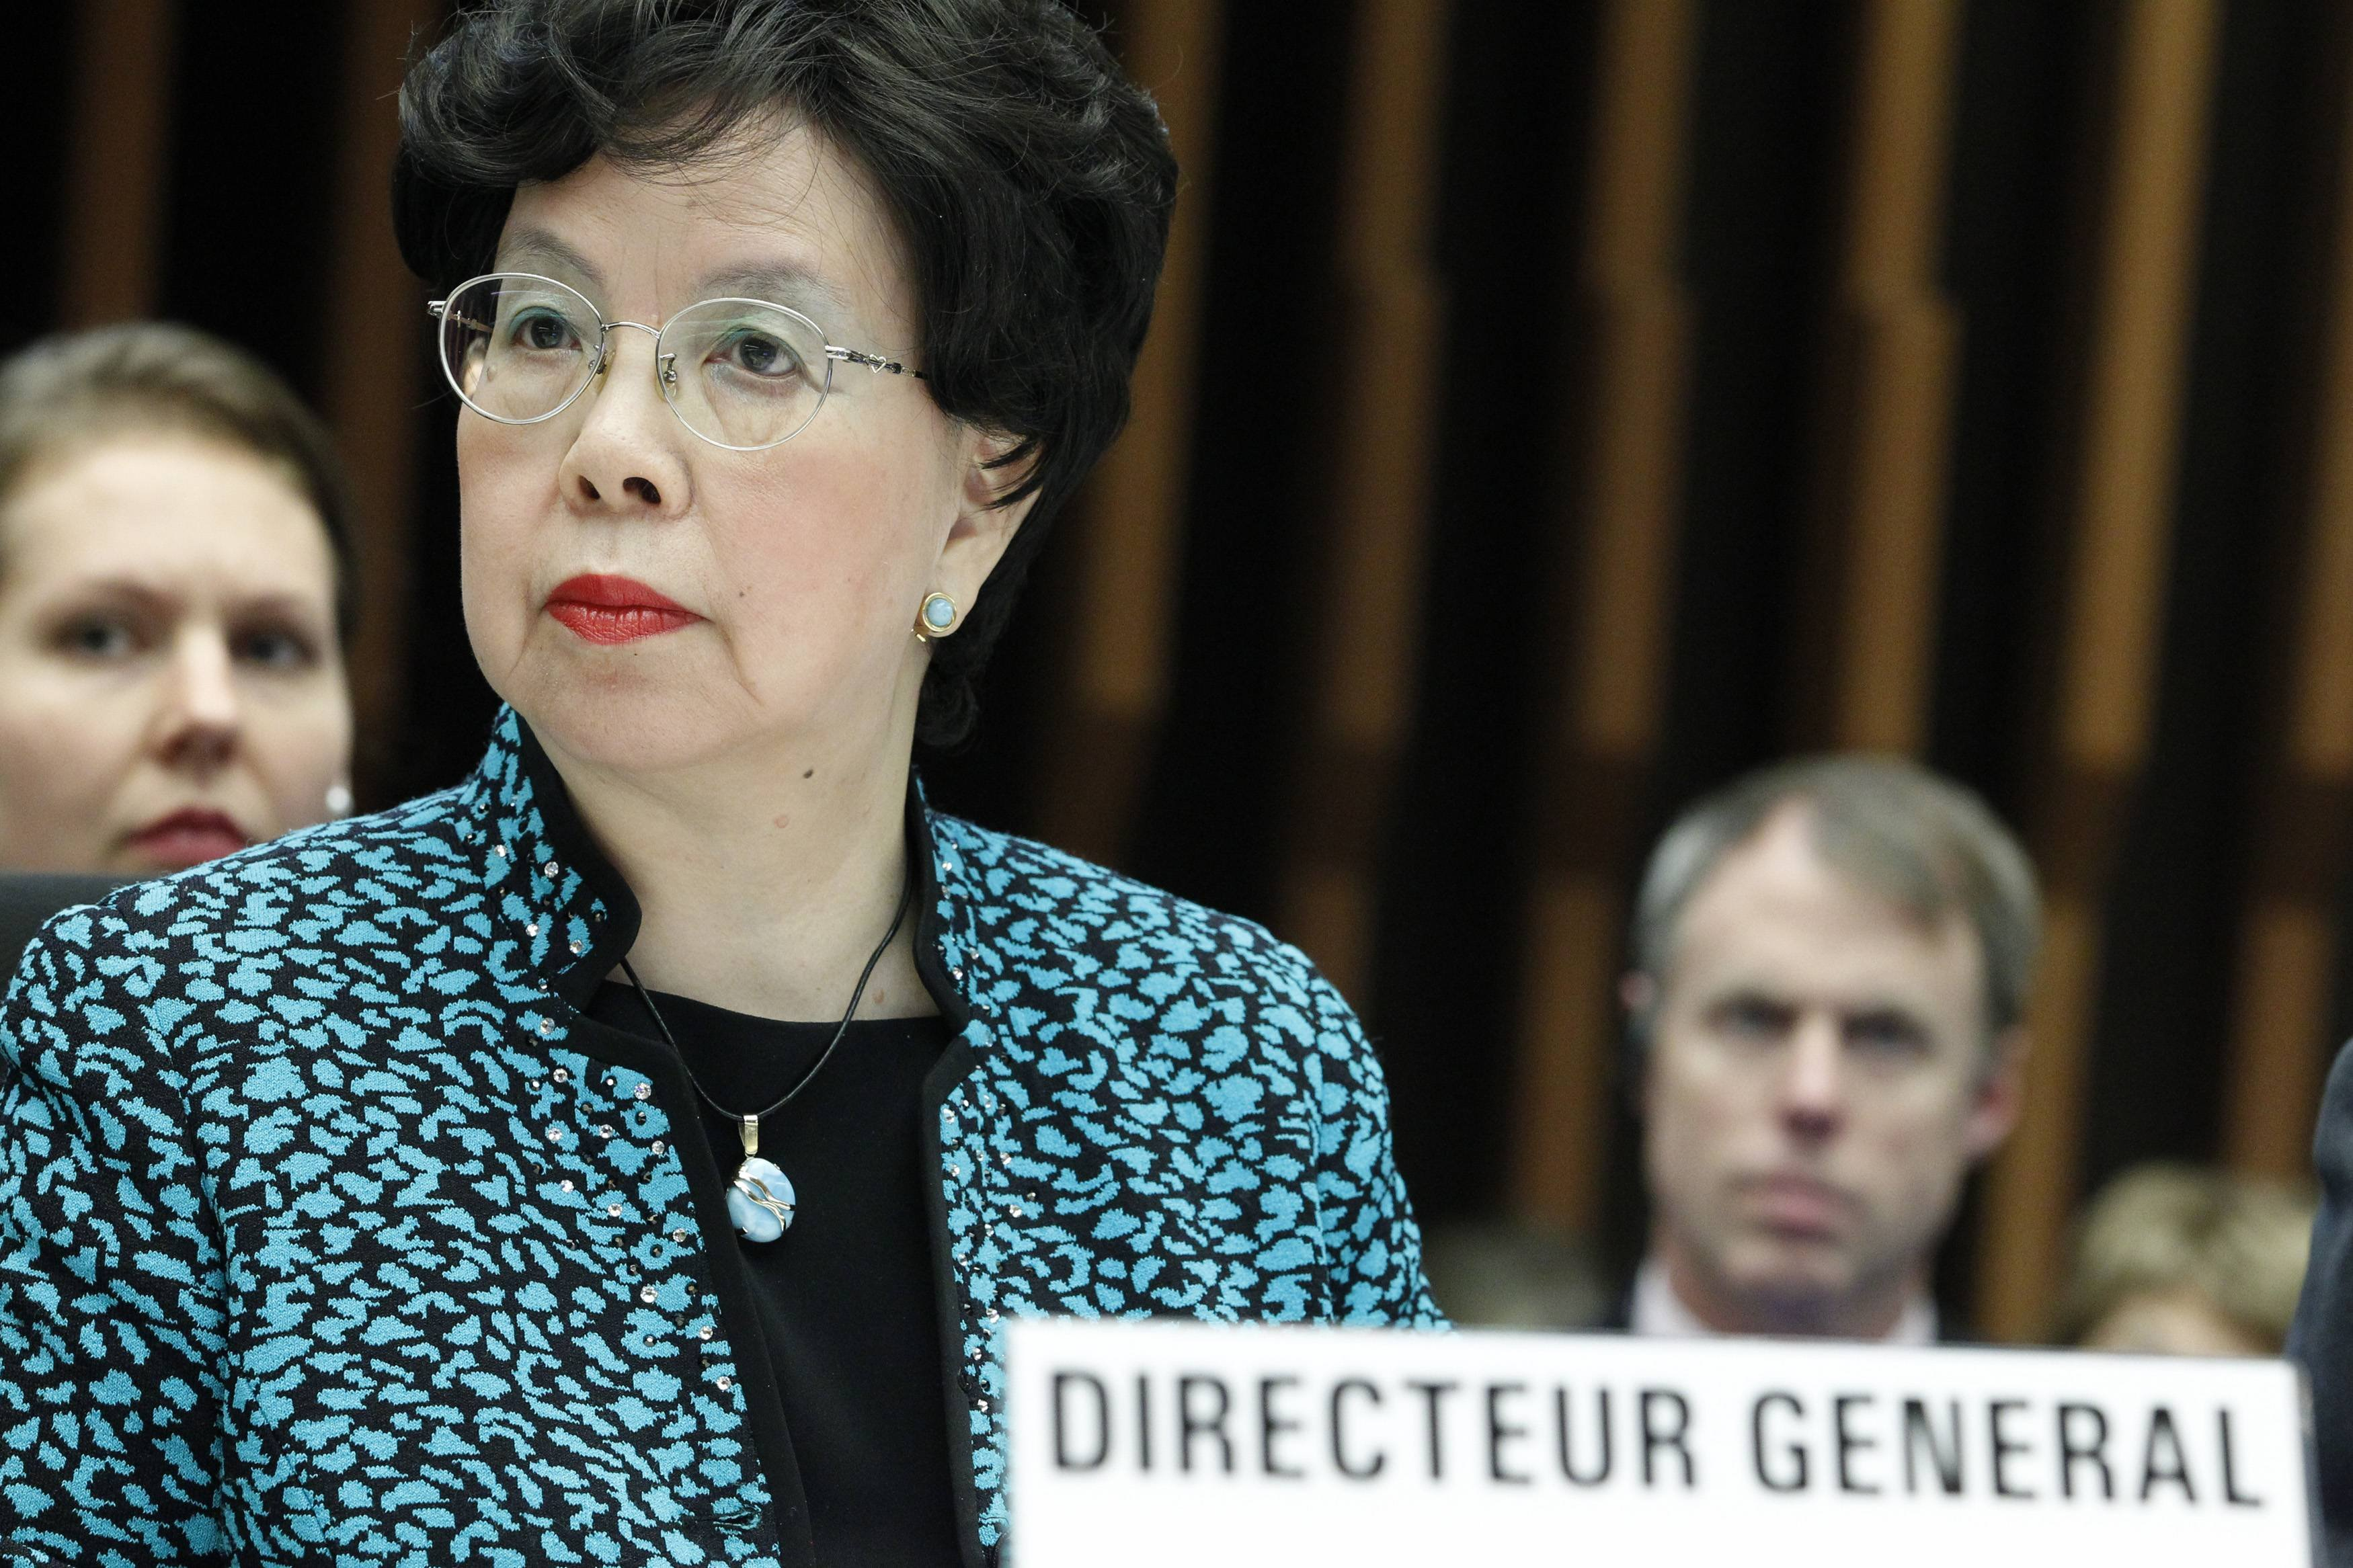 World Health Organization (WHO) Director-General Margaret Chan addresses the media during a special meeting on Ebola at the WHO headquarters in Geneva on Jan. 25, 2015.